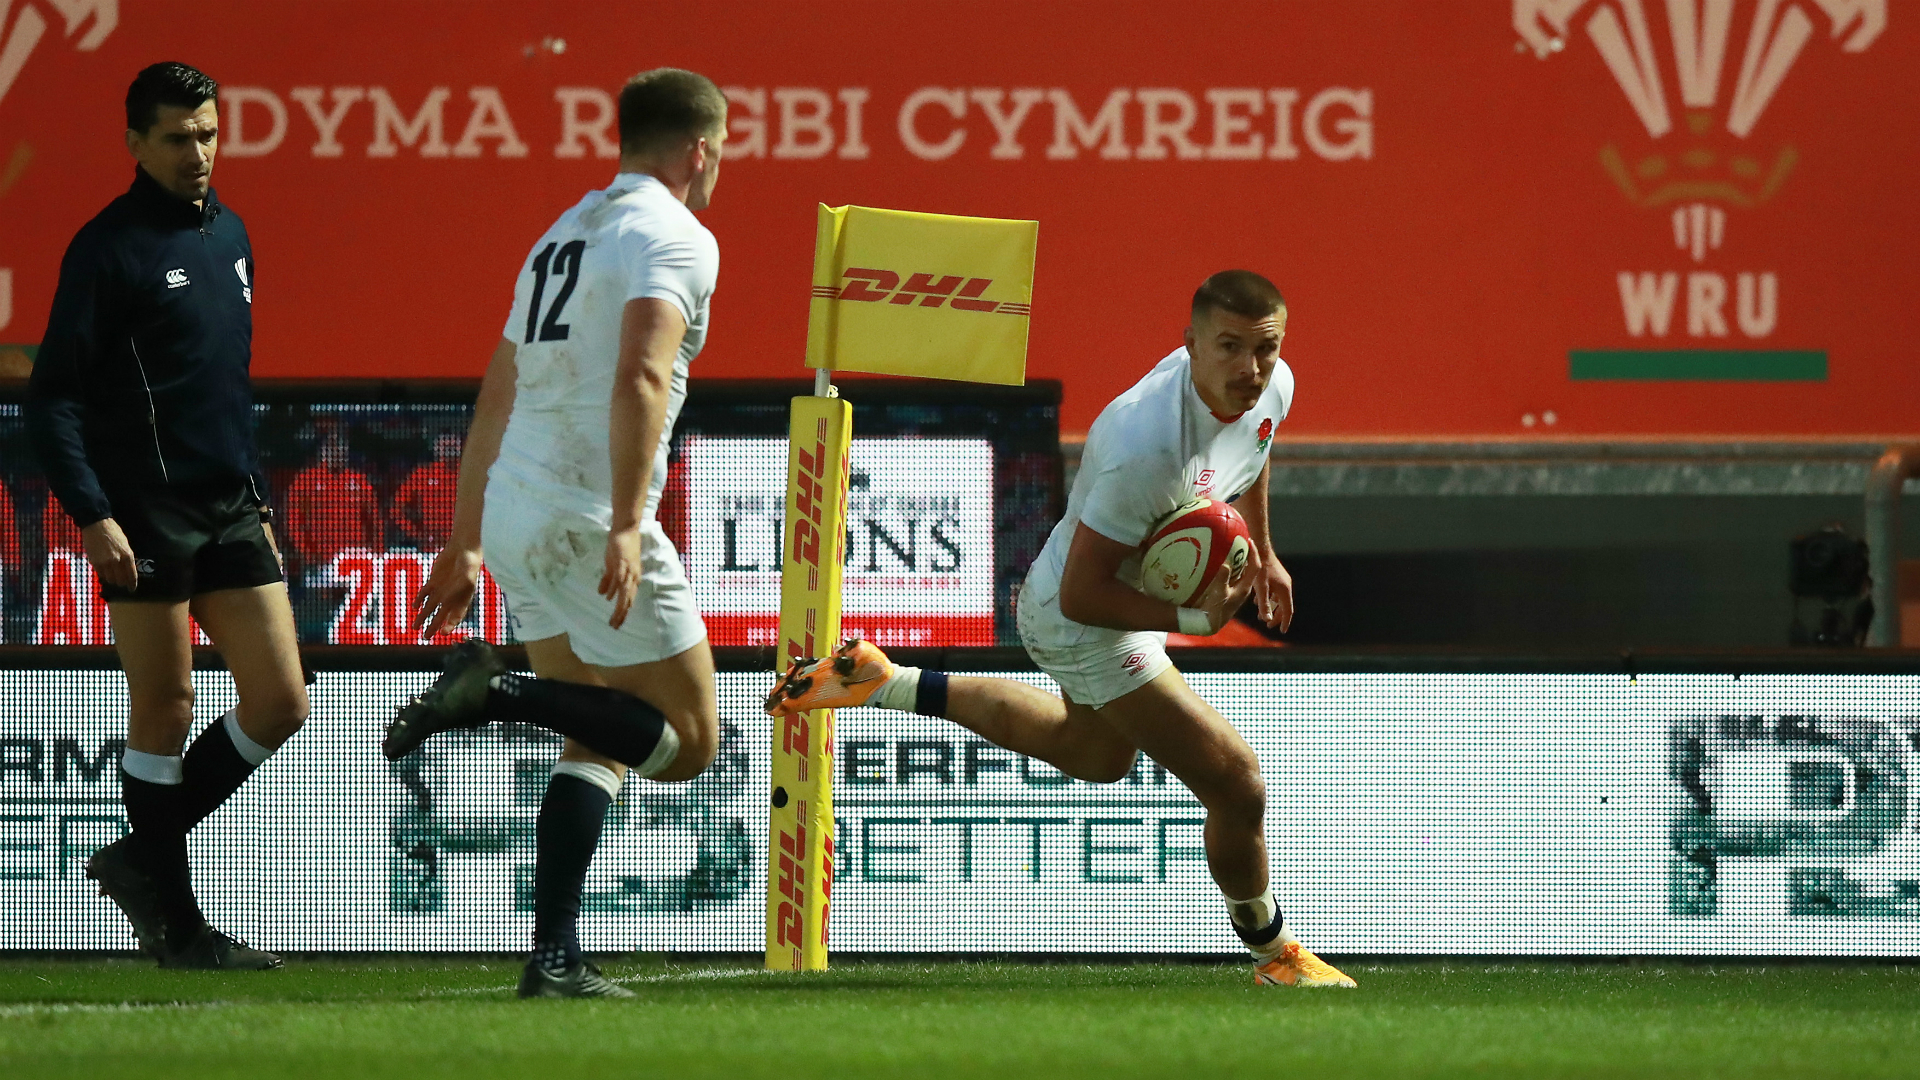 Wales 13-24 England: Slade and Vunipola pounce at Parc for Jones' men